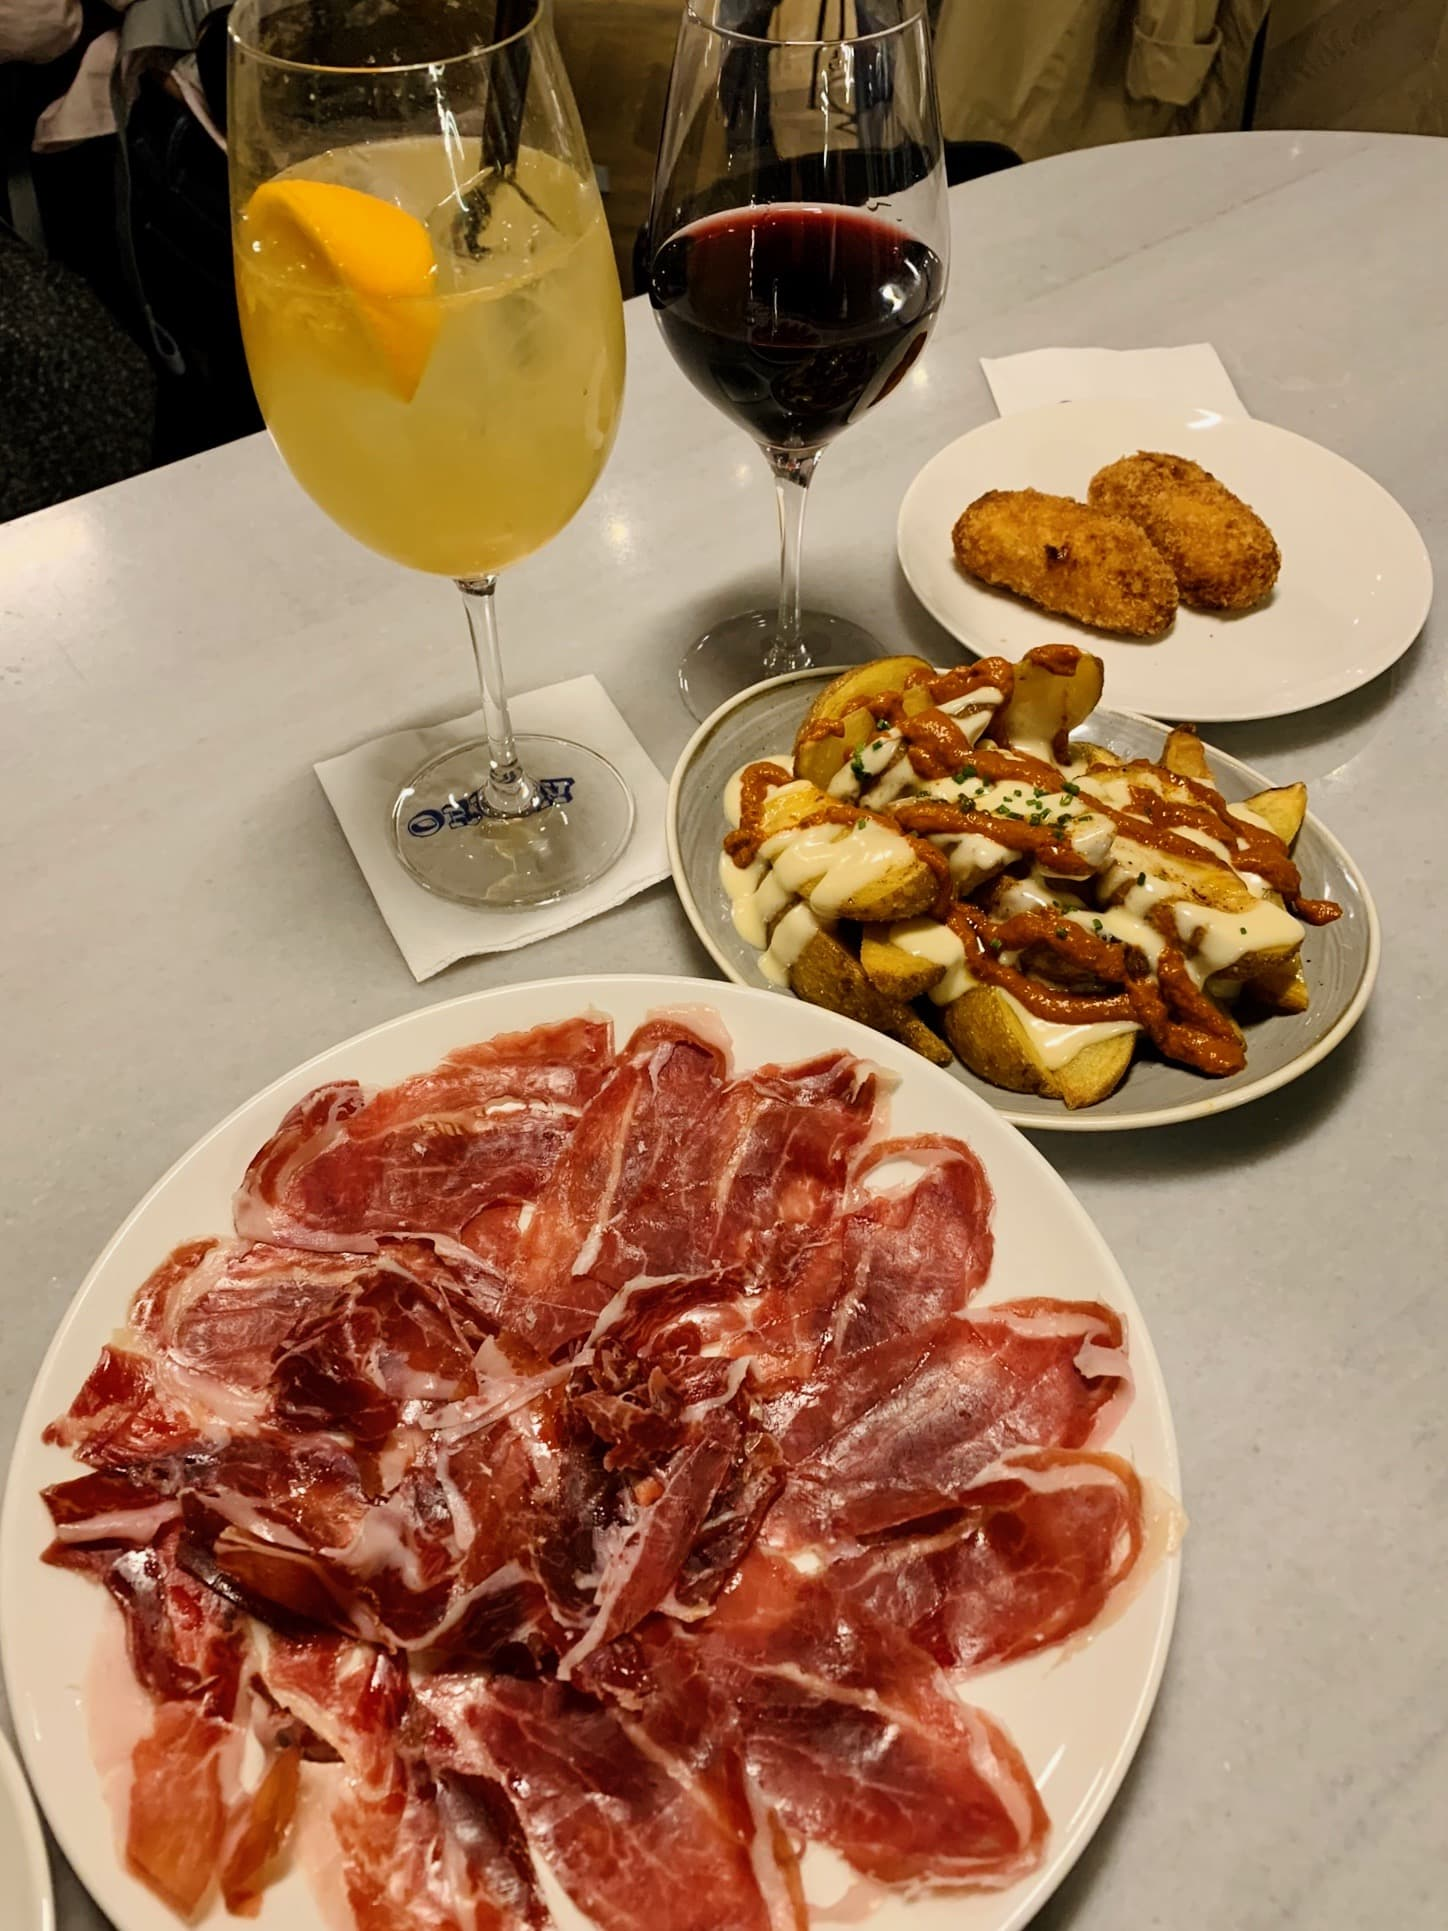 The food we ate in Barcelona